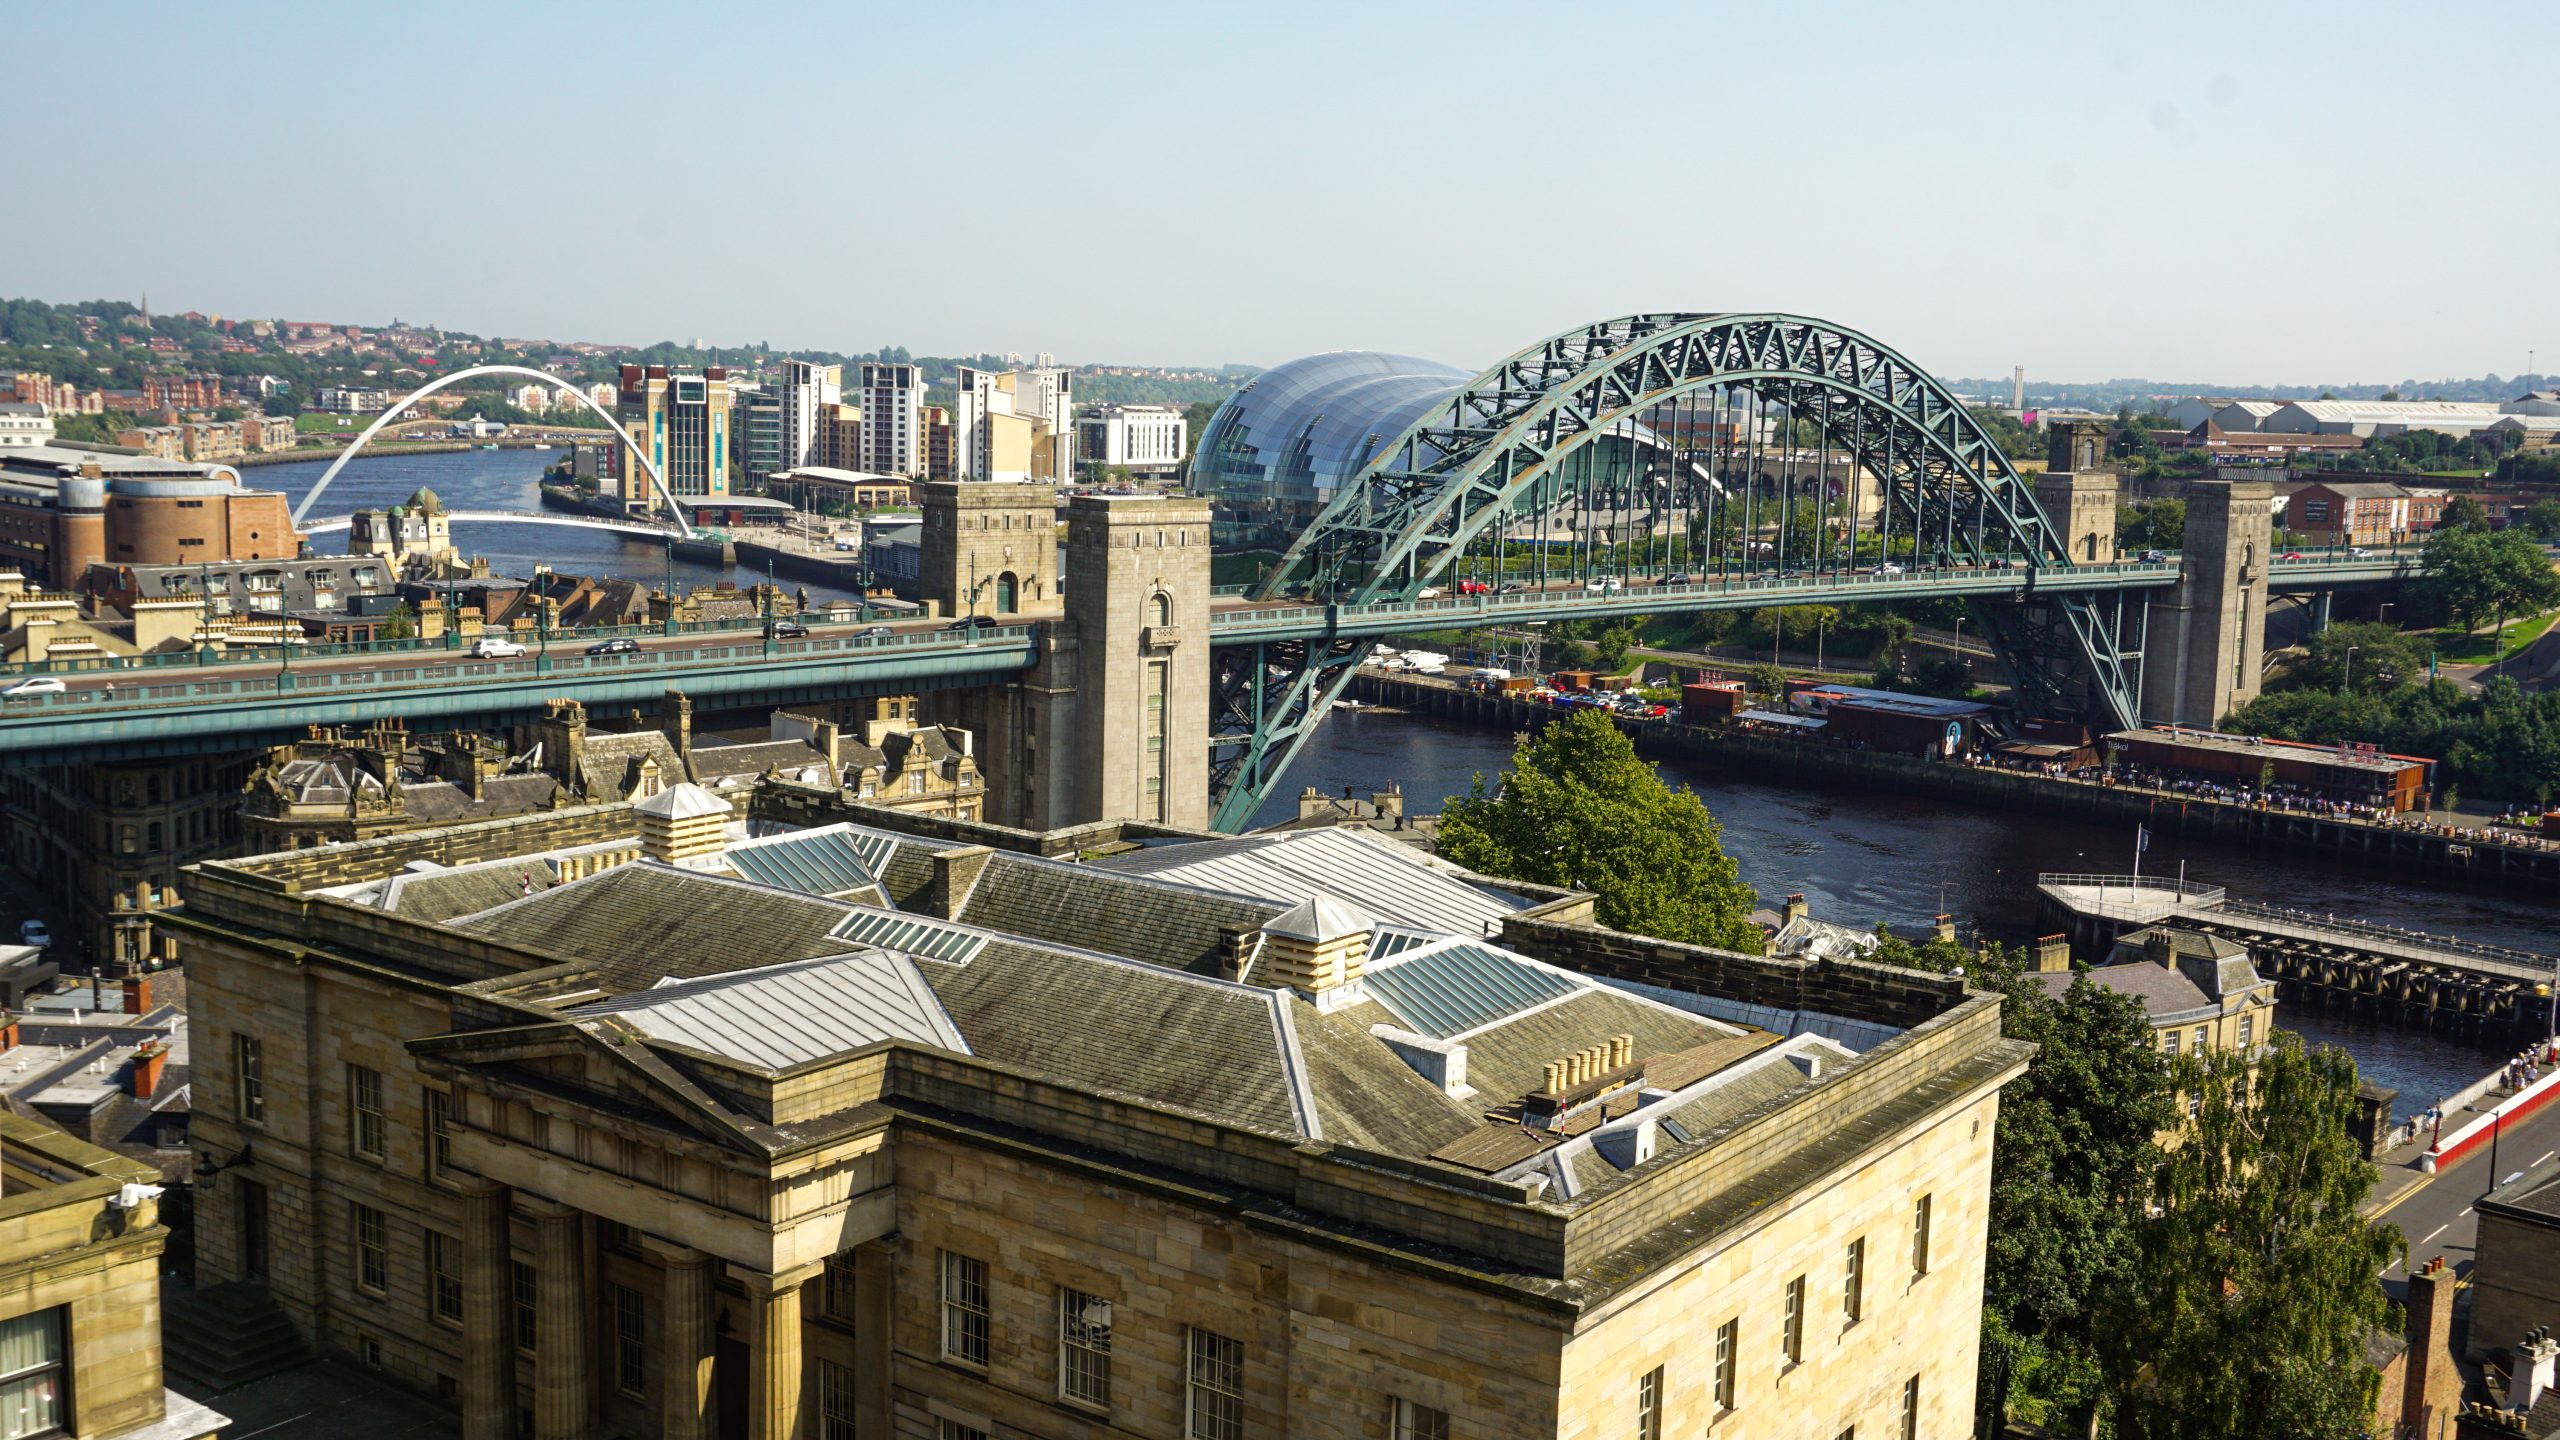 Newcastle Daytrips: Where to Go From Newcastle